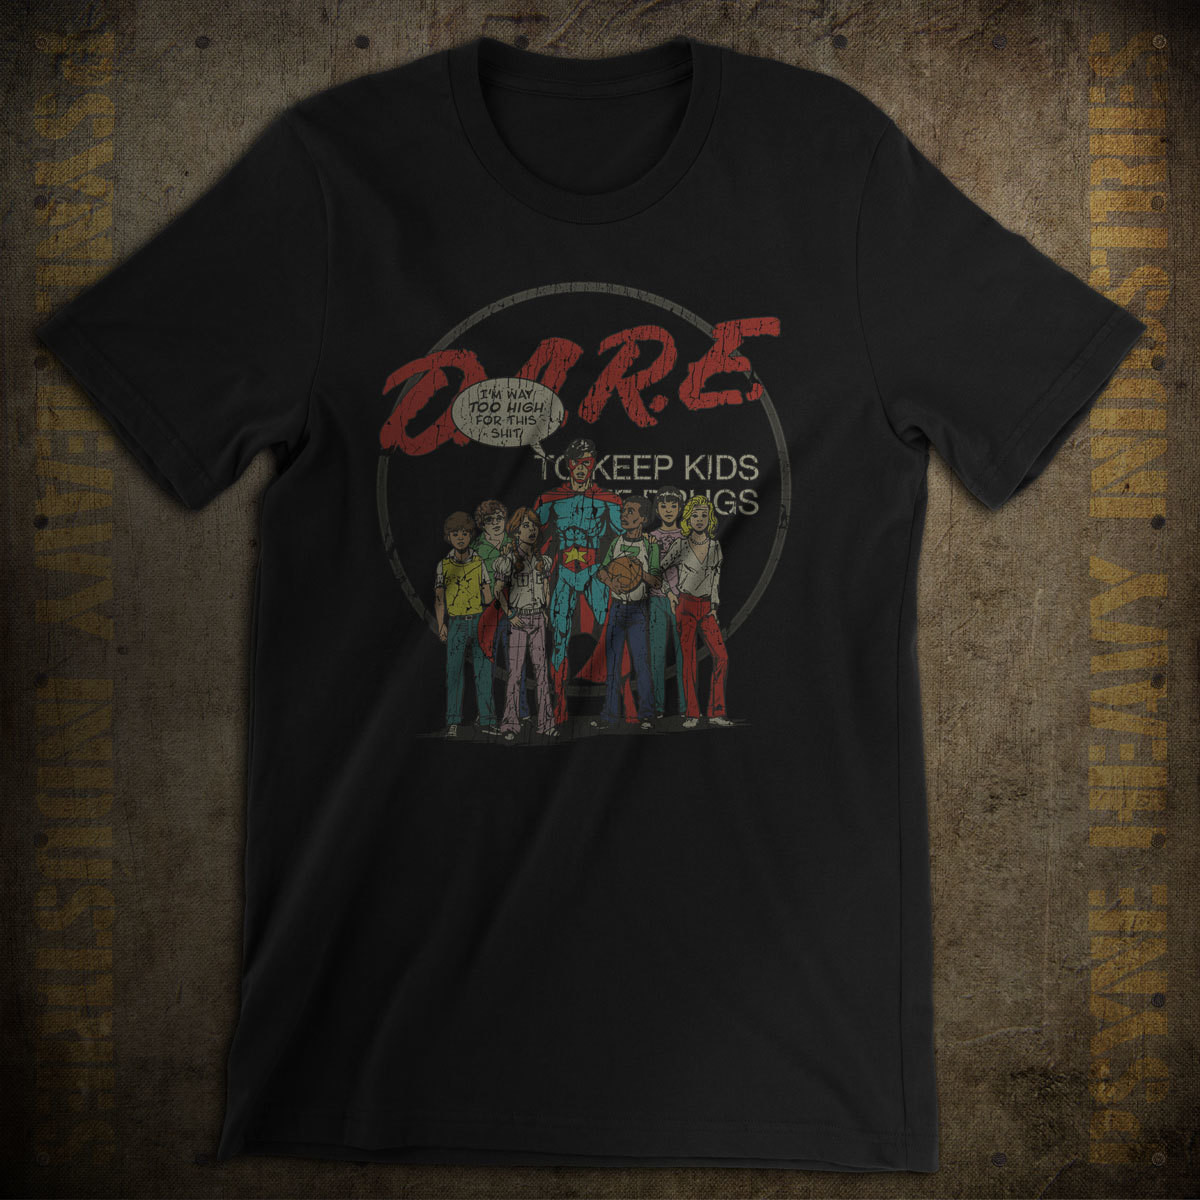 I'm Way Too High For This Sh!t Vintage DARE T-Shirt